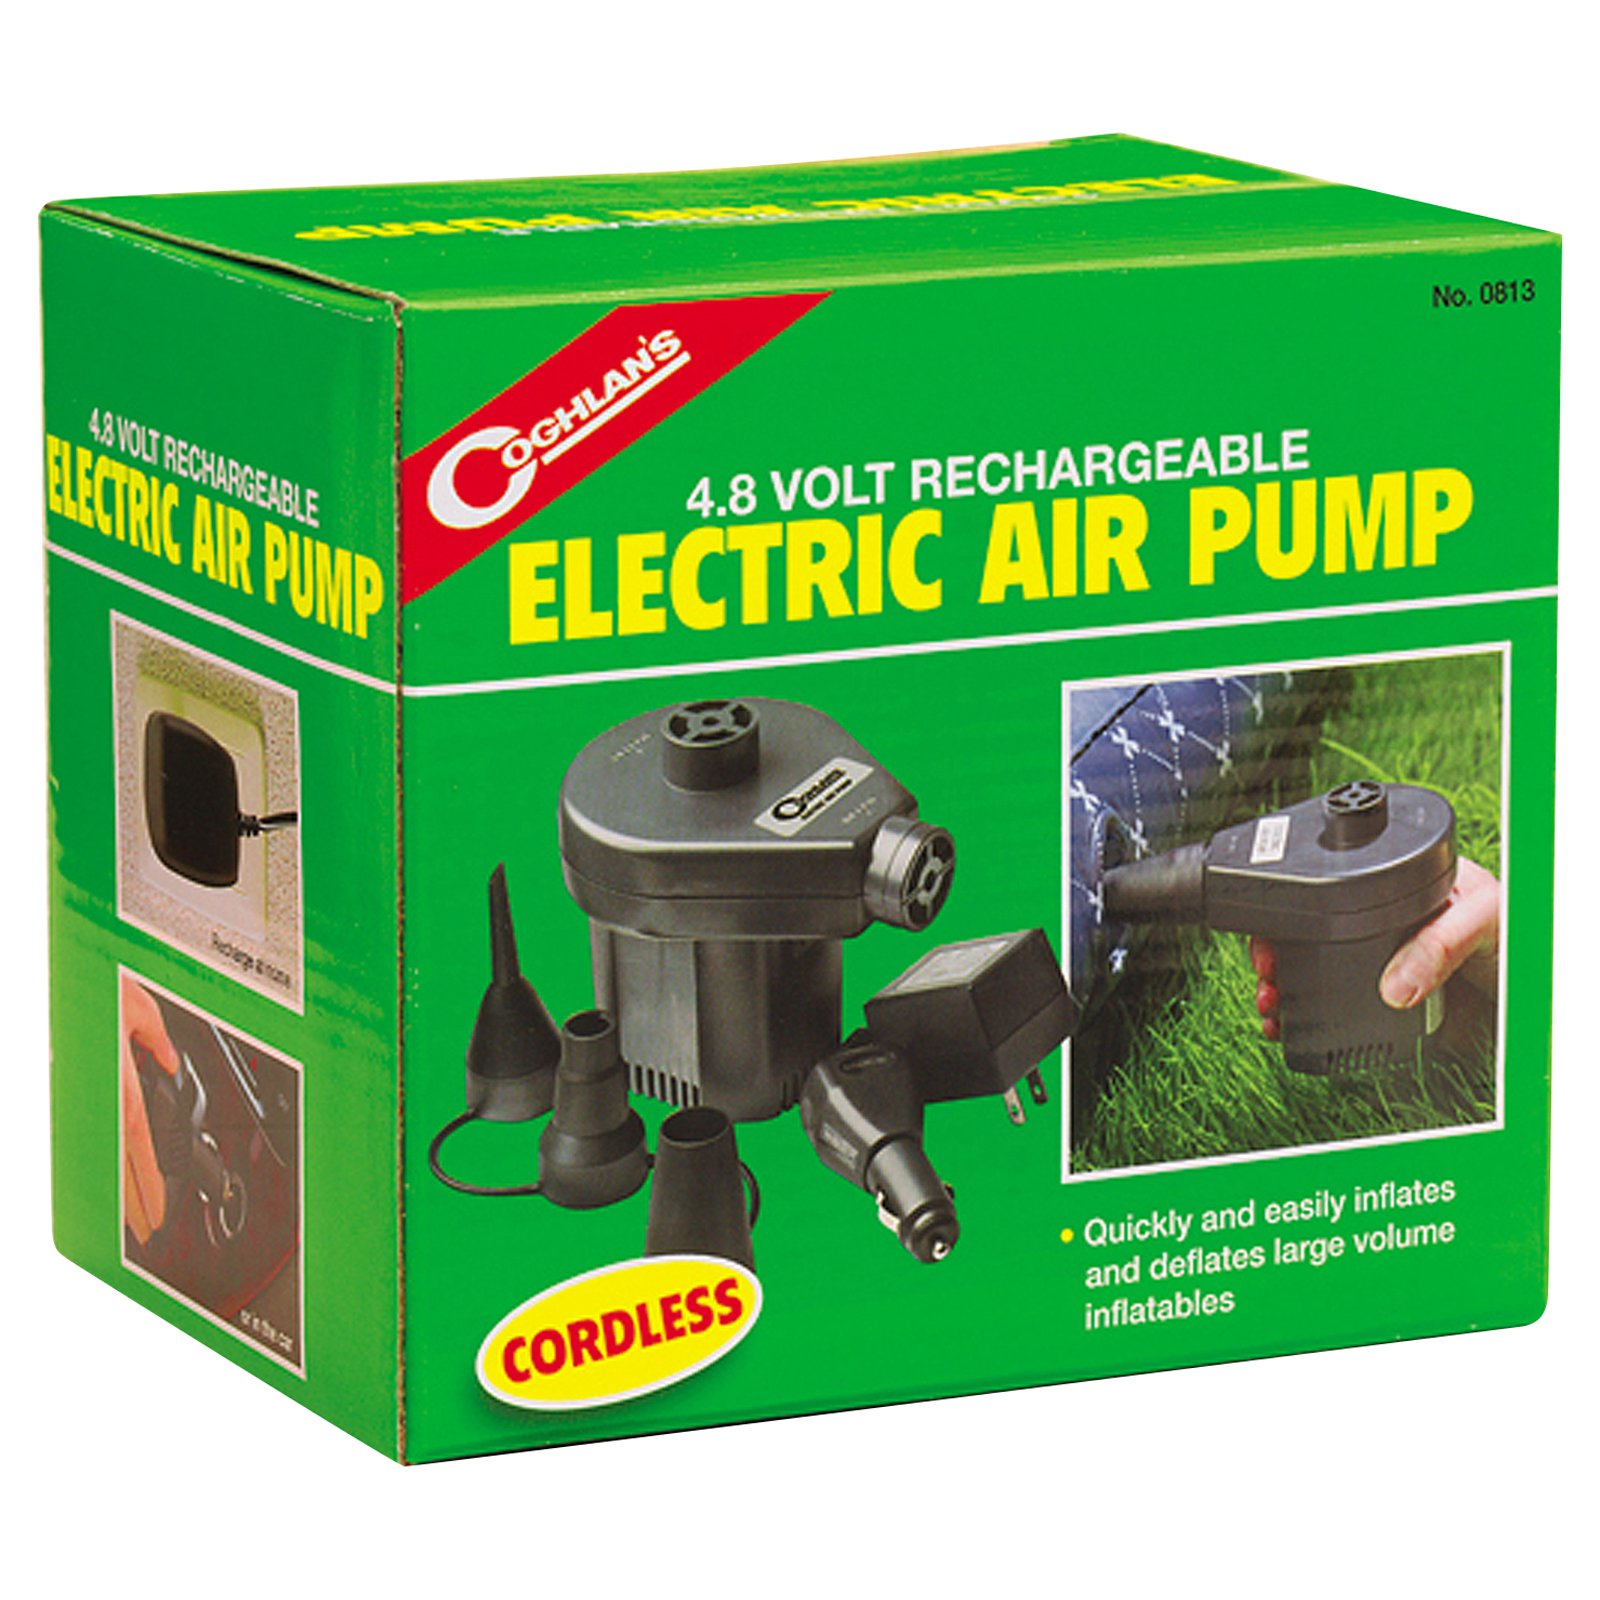 Coghlan's Electric Air Pump by Coghlan'S Ltd.